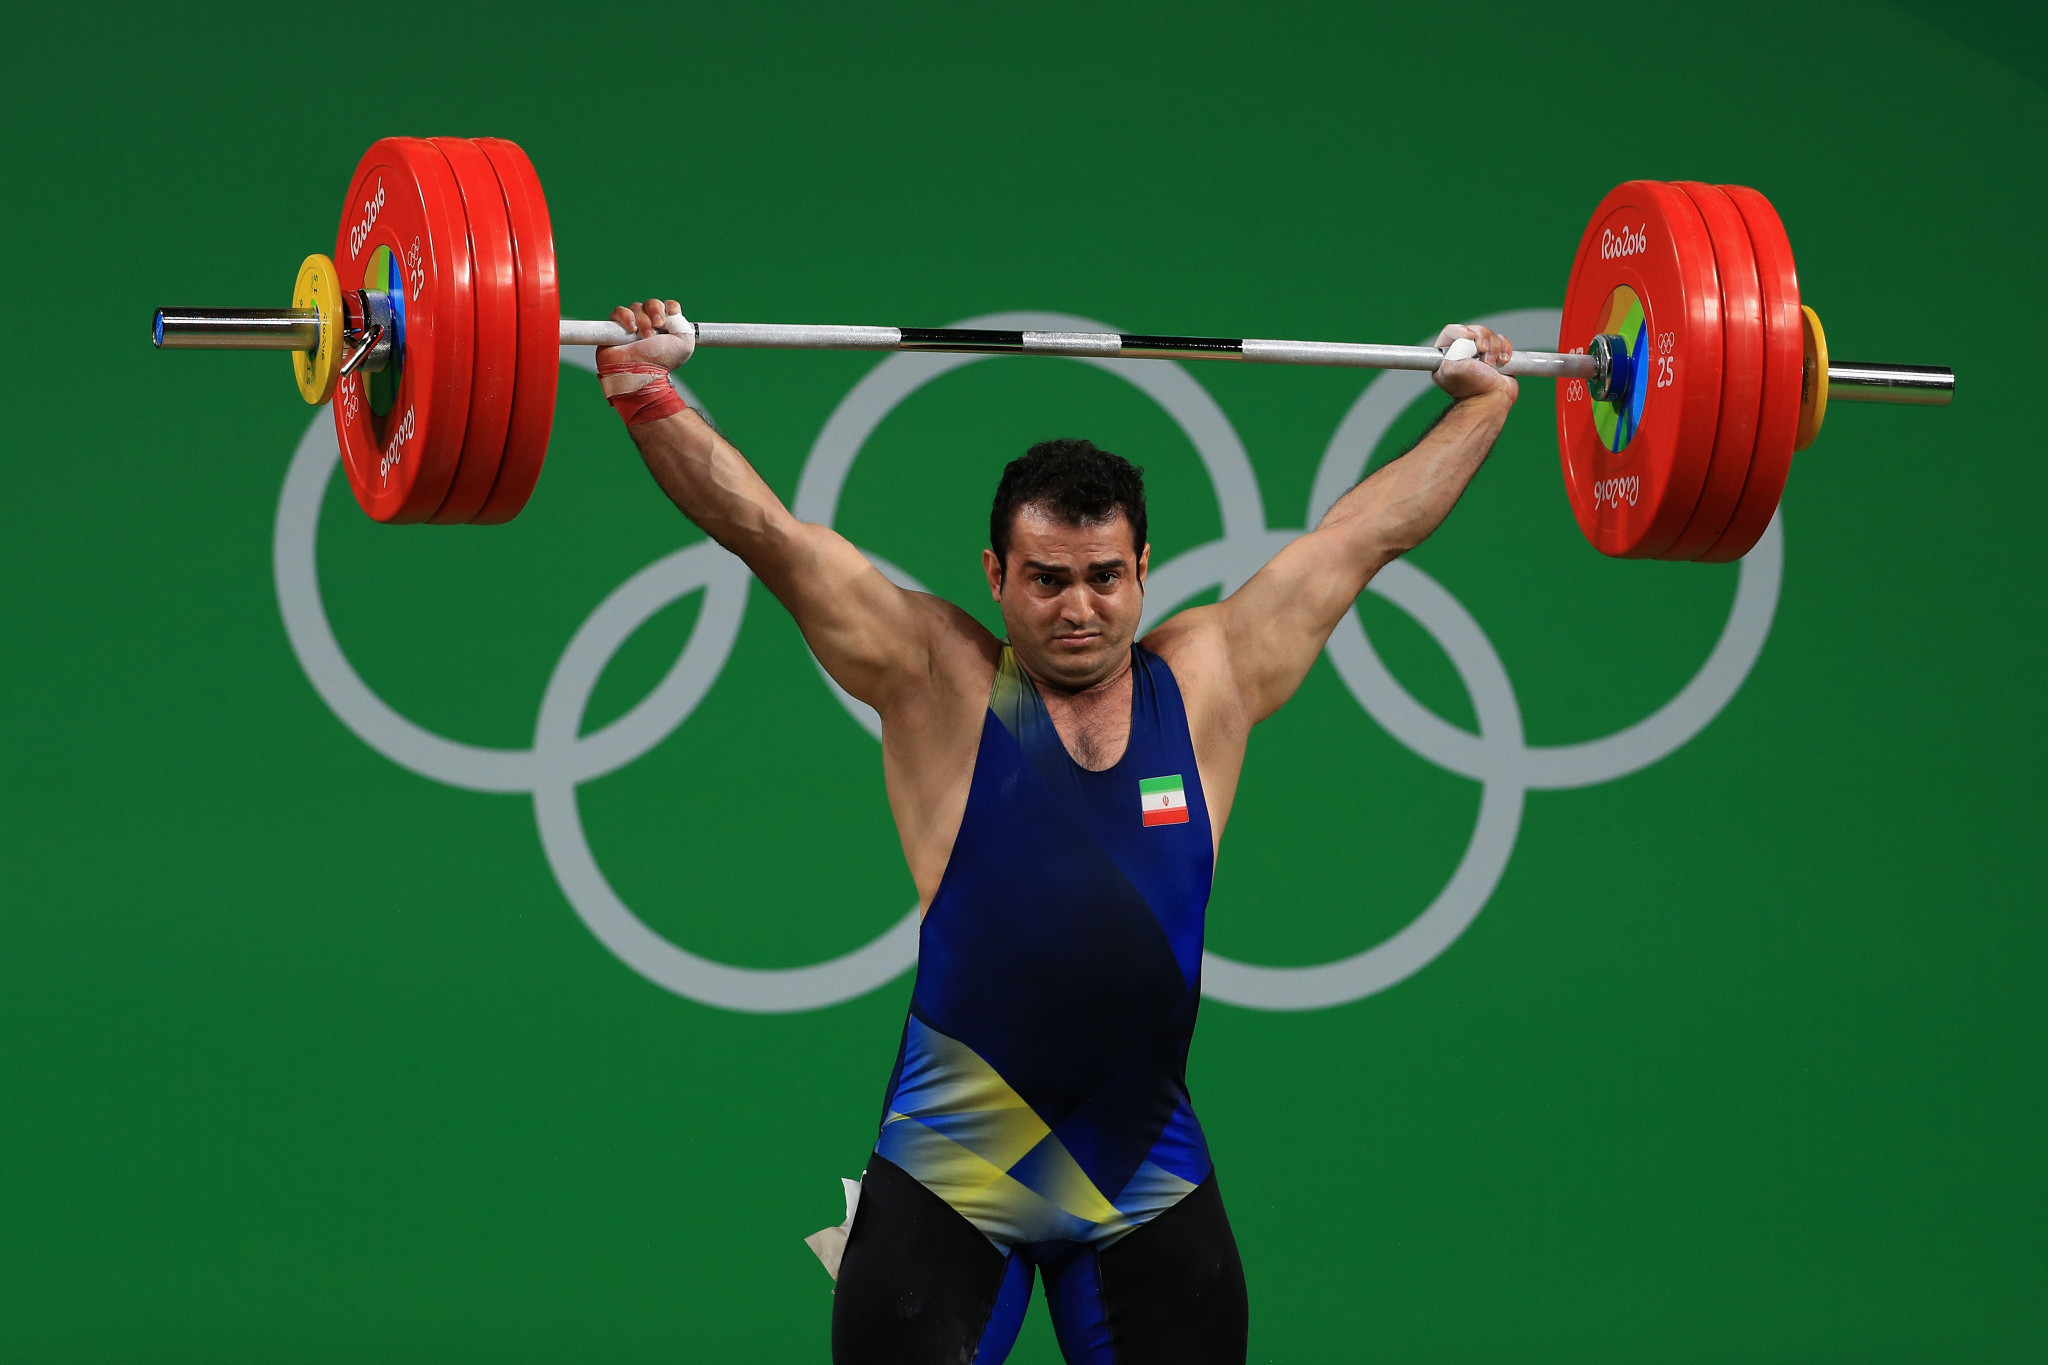 Sohrab Moradi is a world and Olympic champion ©Getty Images